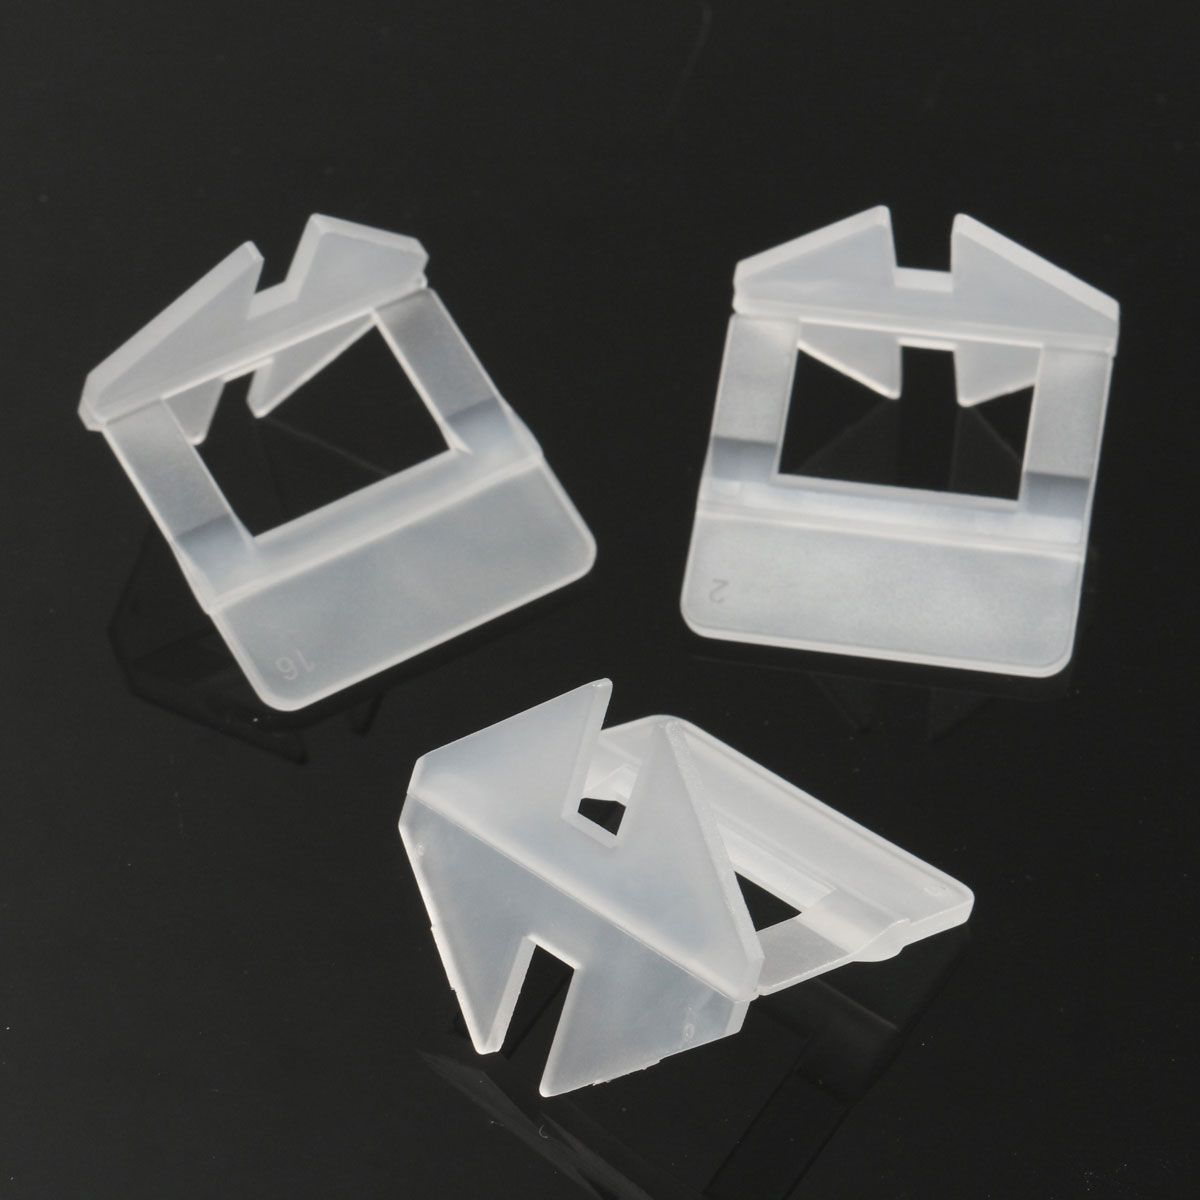 200pcsset tile leveling system clips spacer plastic tiling tools tile leveling system clips spacer plastic tiling tools prevent the movement of ceramic tile favorable price dailygadgetfo Image collections